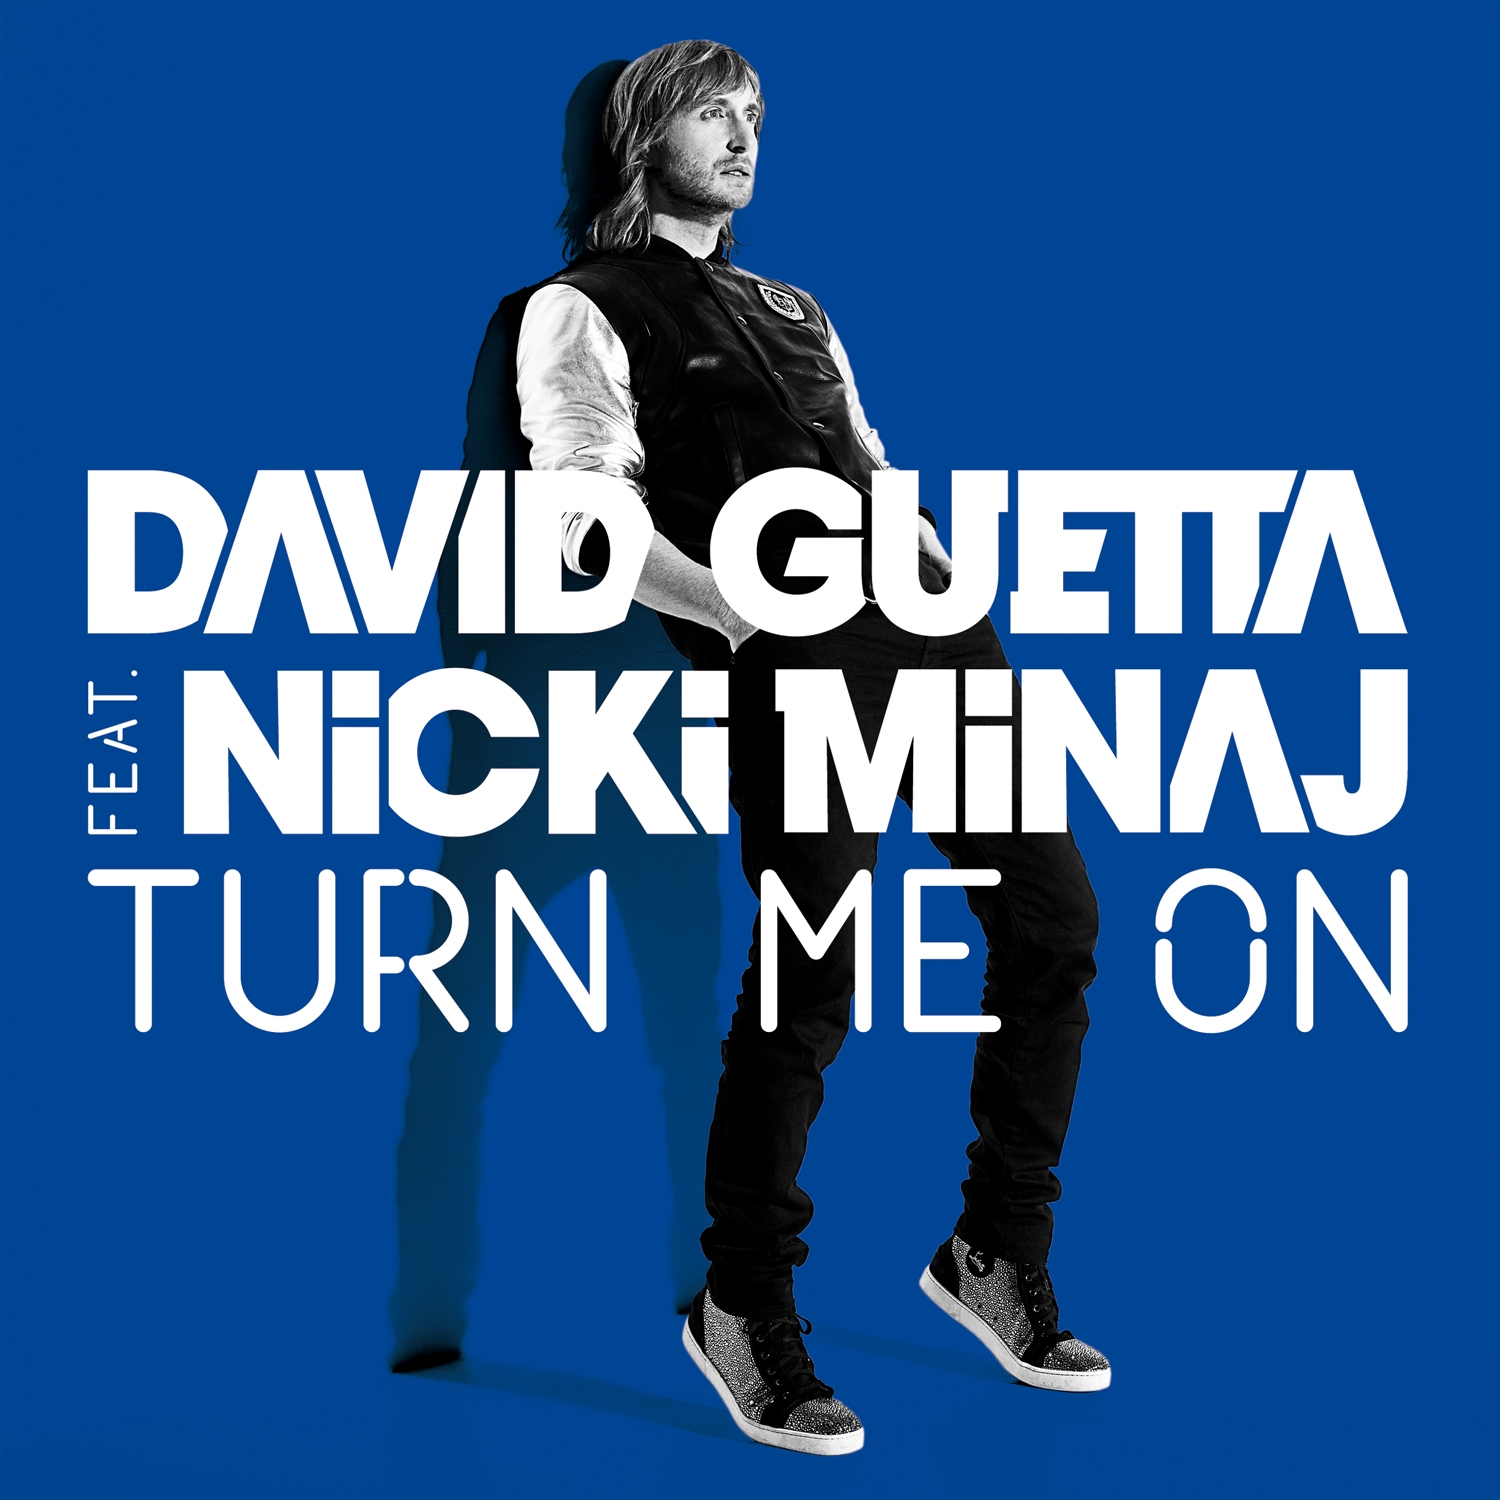 http://2.bp.blogspot.com/-290vRBSSneg/T2EMgkIamvI/AAAAAAAAAhk/miBEc9kKtWM/s1600/the+big+shots+-+david+guetta+-+turn+me+on+%2528feat.+nicki+minaj%2529.jpg